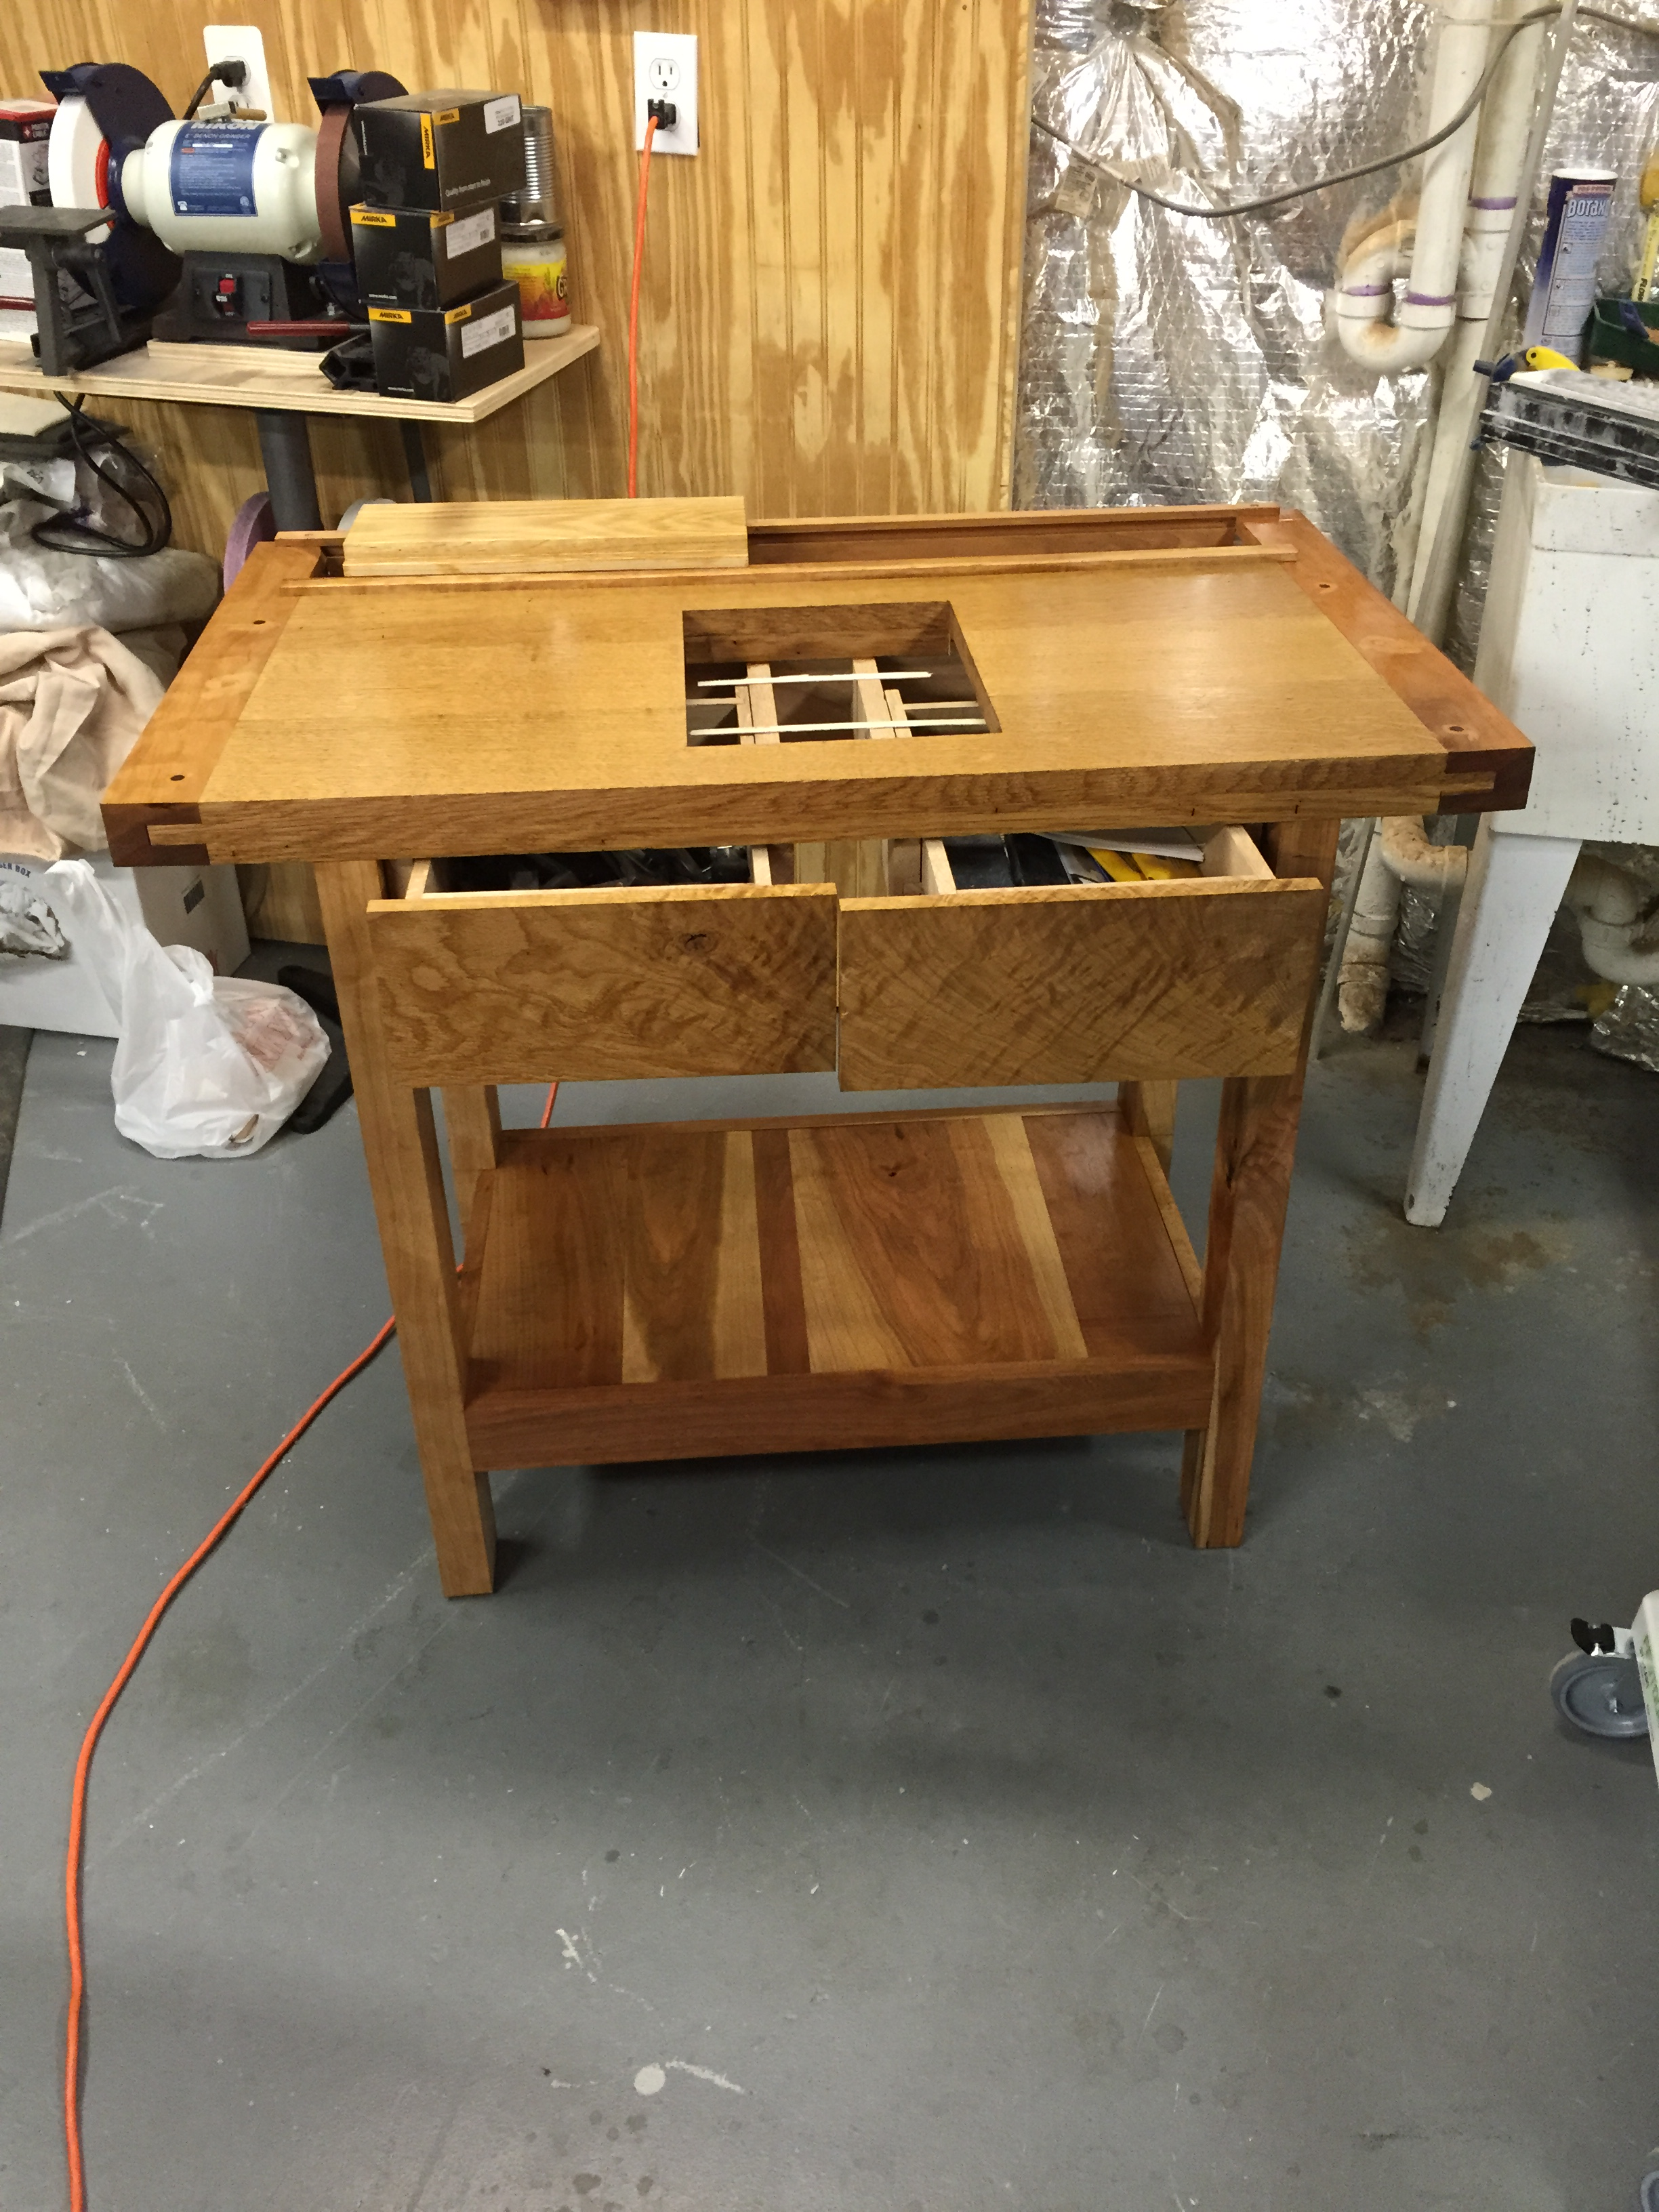 Brian S Workbench Woodworking For The Fun Of It Page 3